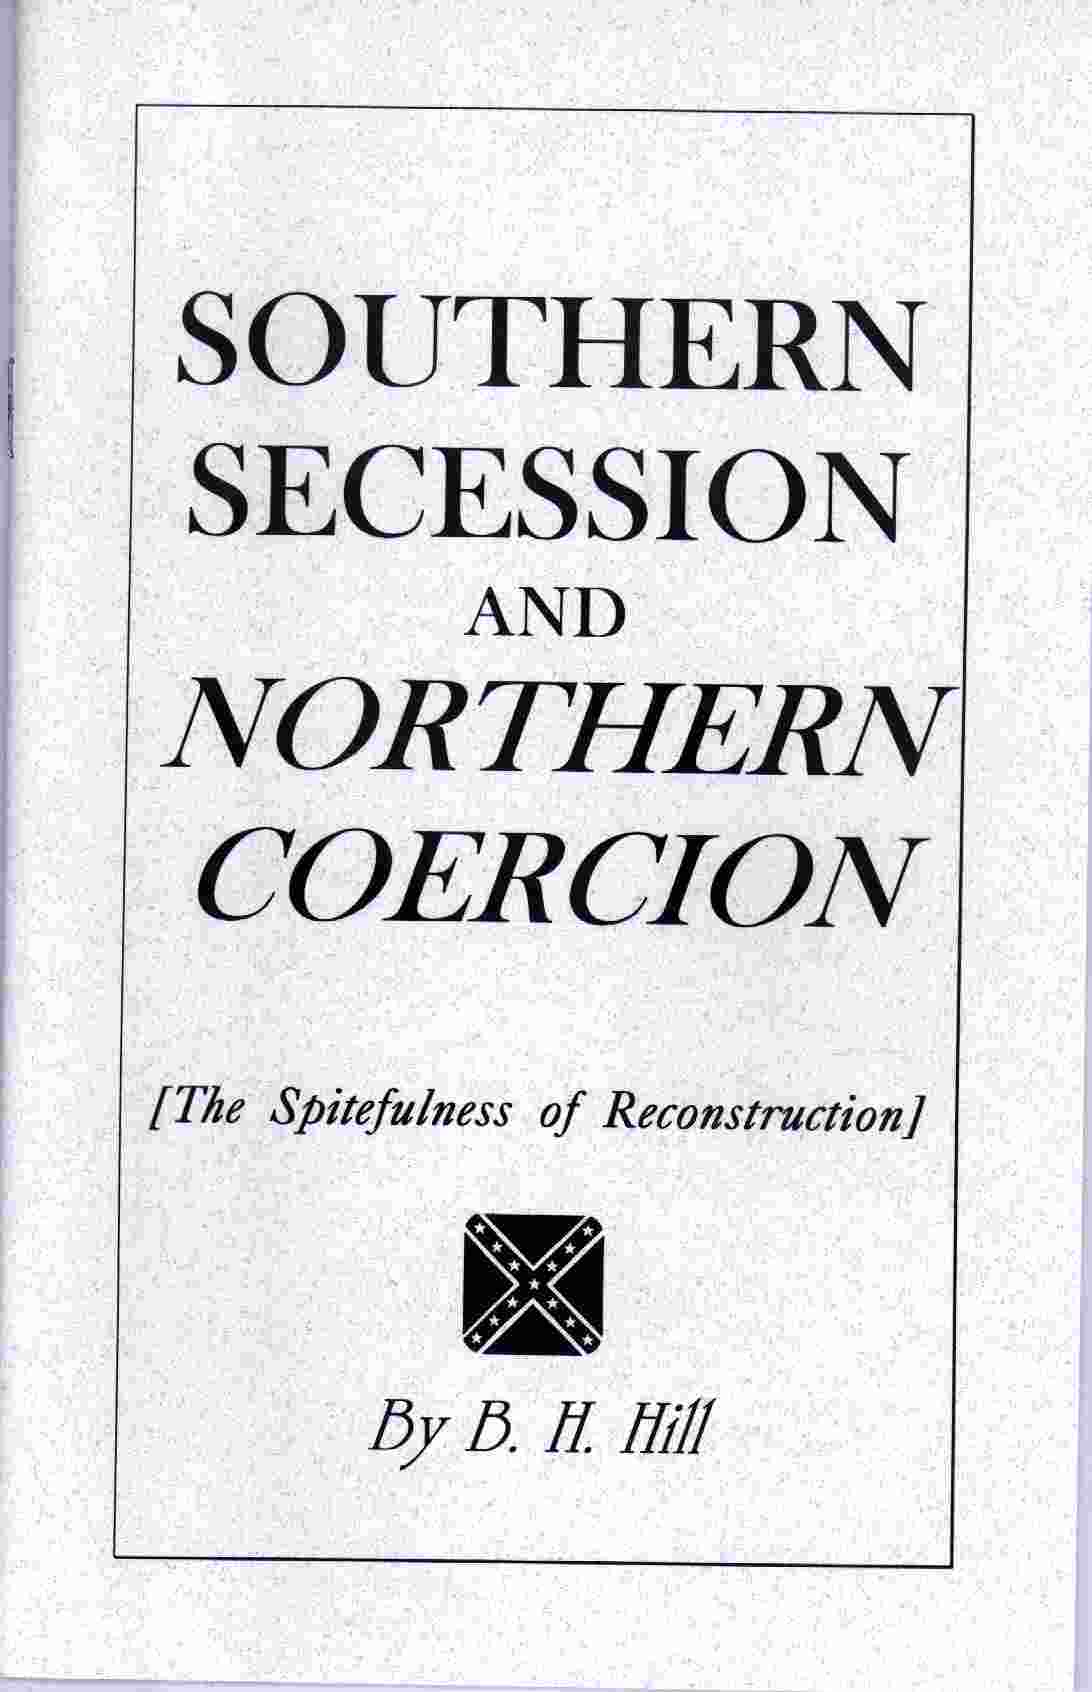 Image for SOUTHERN SECESSION AND NORTHERN COERCION The Spitefulness of Reconstruction